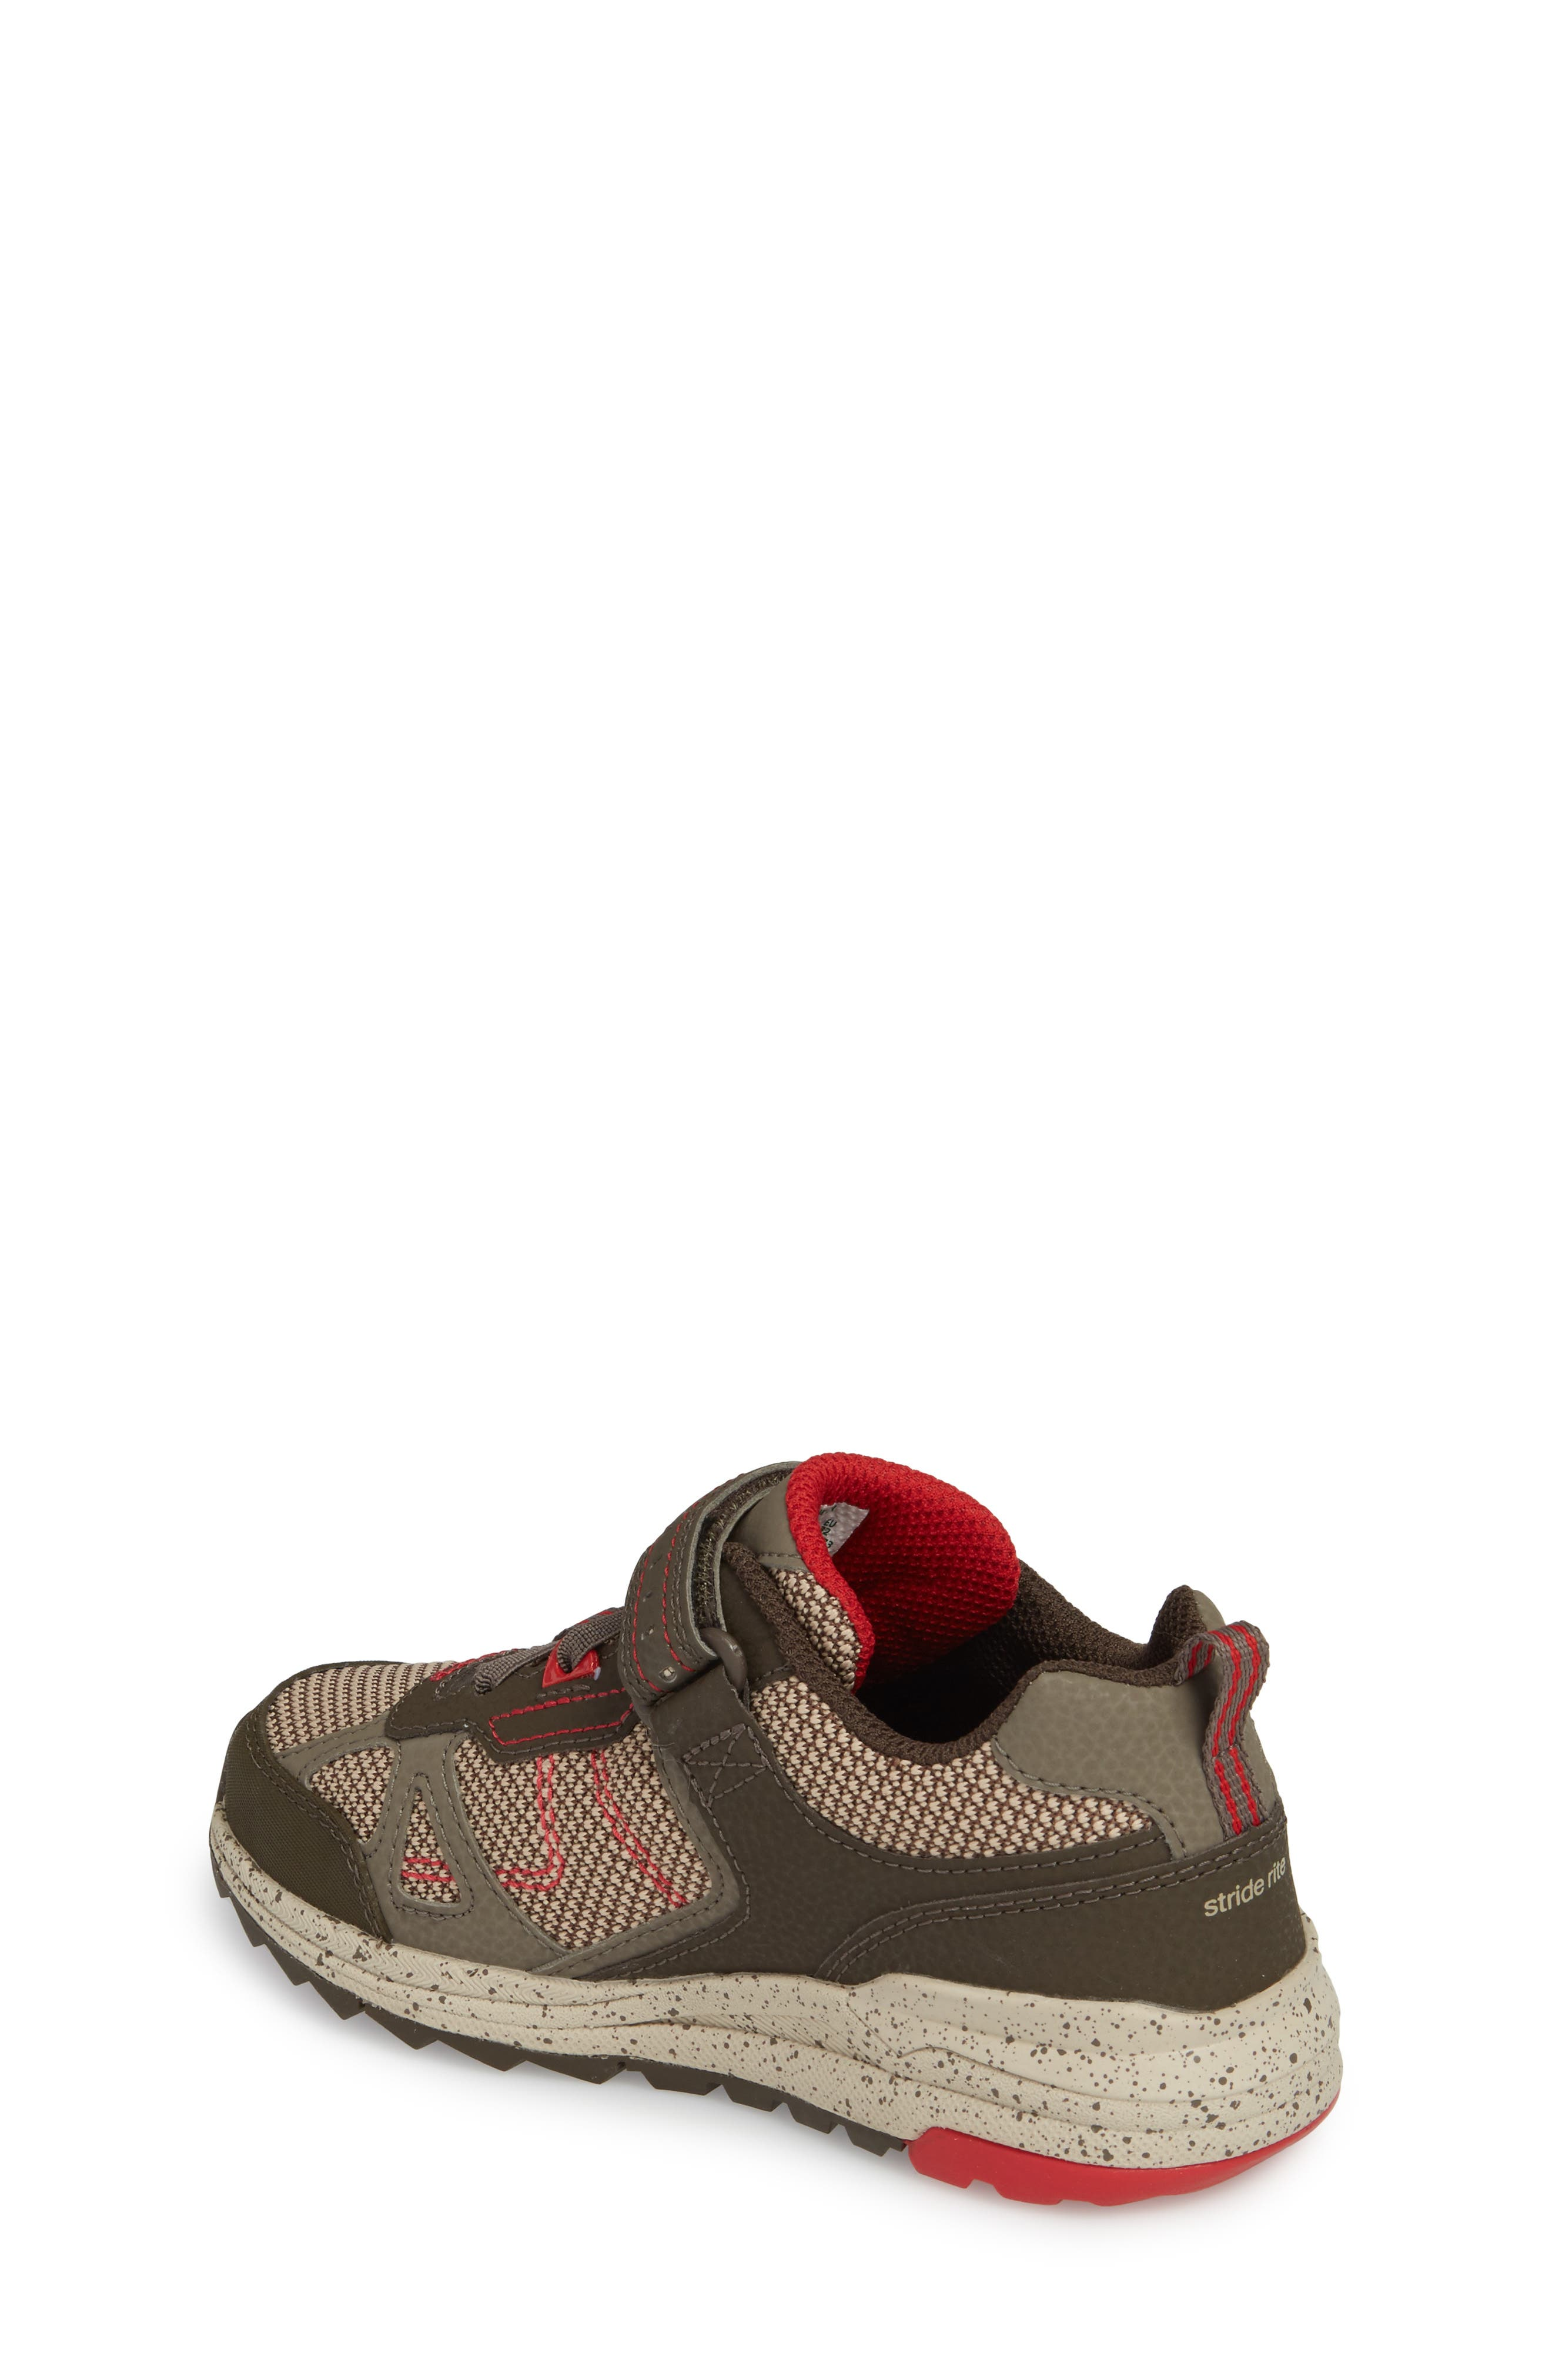 Made2Play<sup>®</sup> Owen Washable Sneaker,                             Alternate thumbnail 2, color,                             Brown Leather/ Textile